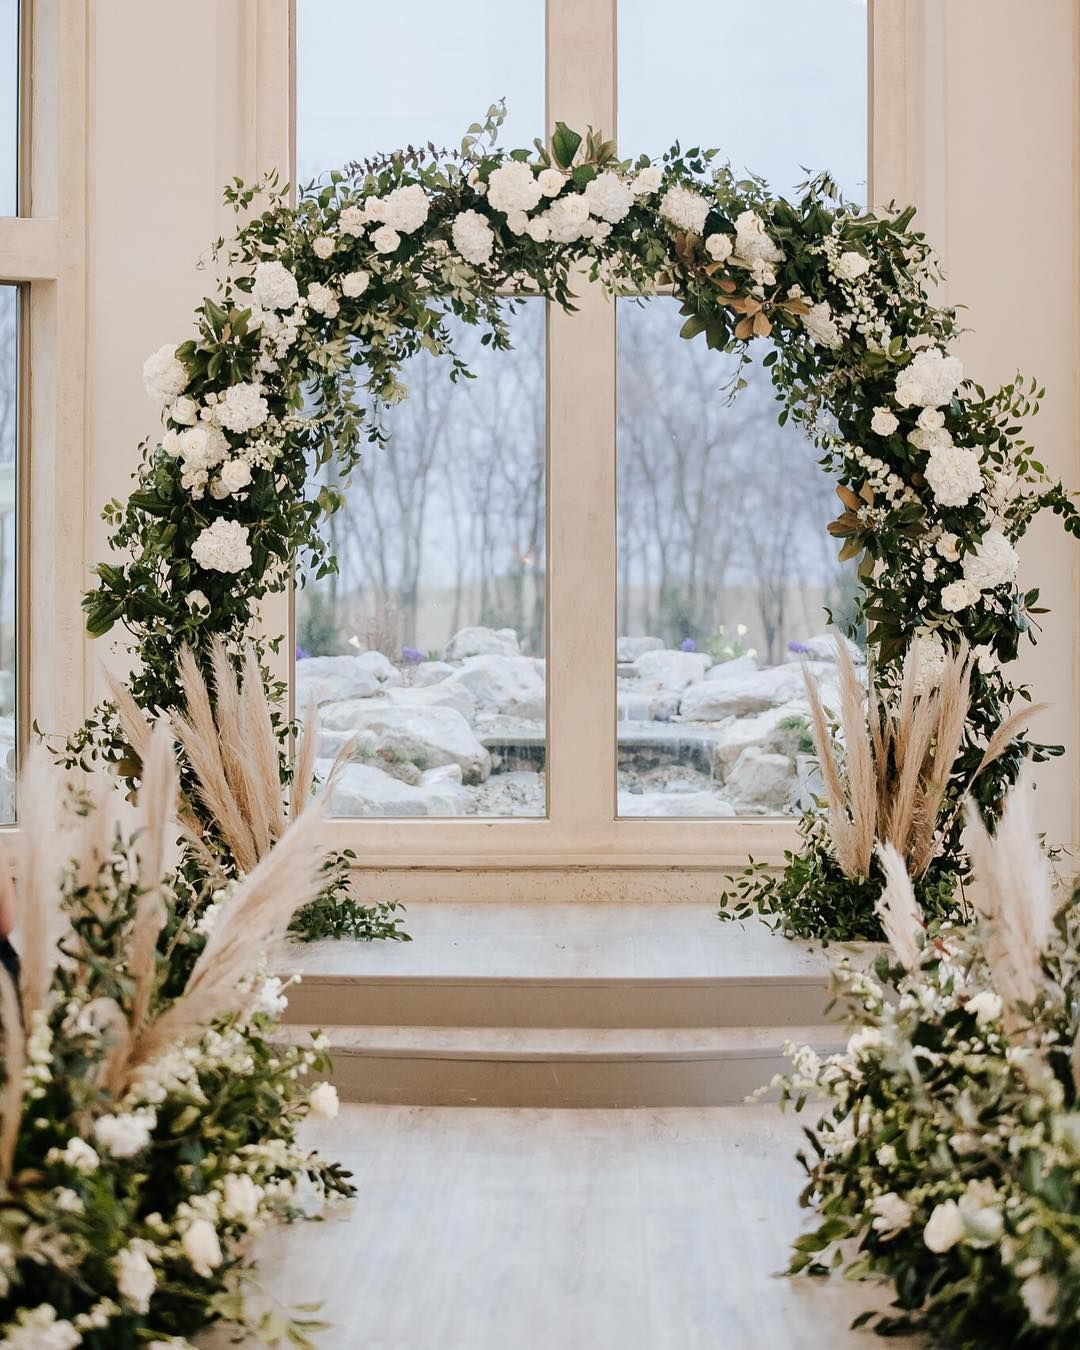 Lush Floral Arch At A Winter Wedding In Texas Wedding Arch Rental Arch Decoration Wedding Wedding Photo Walls